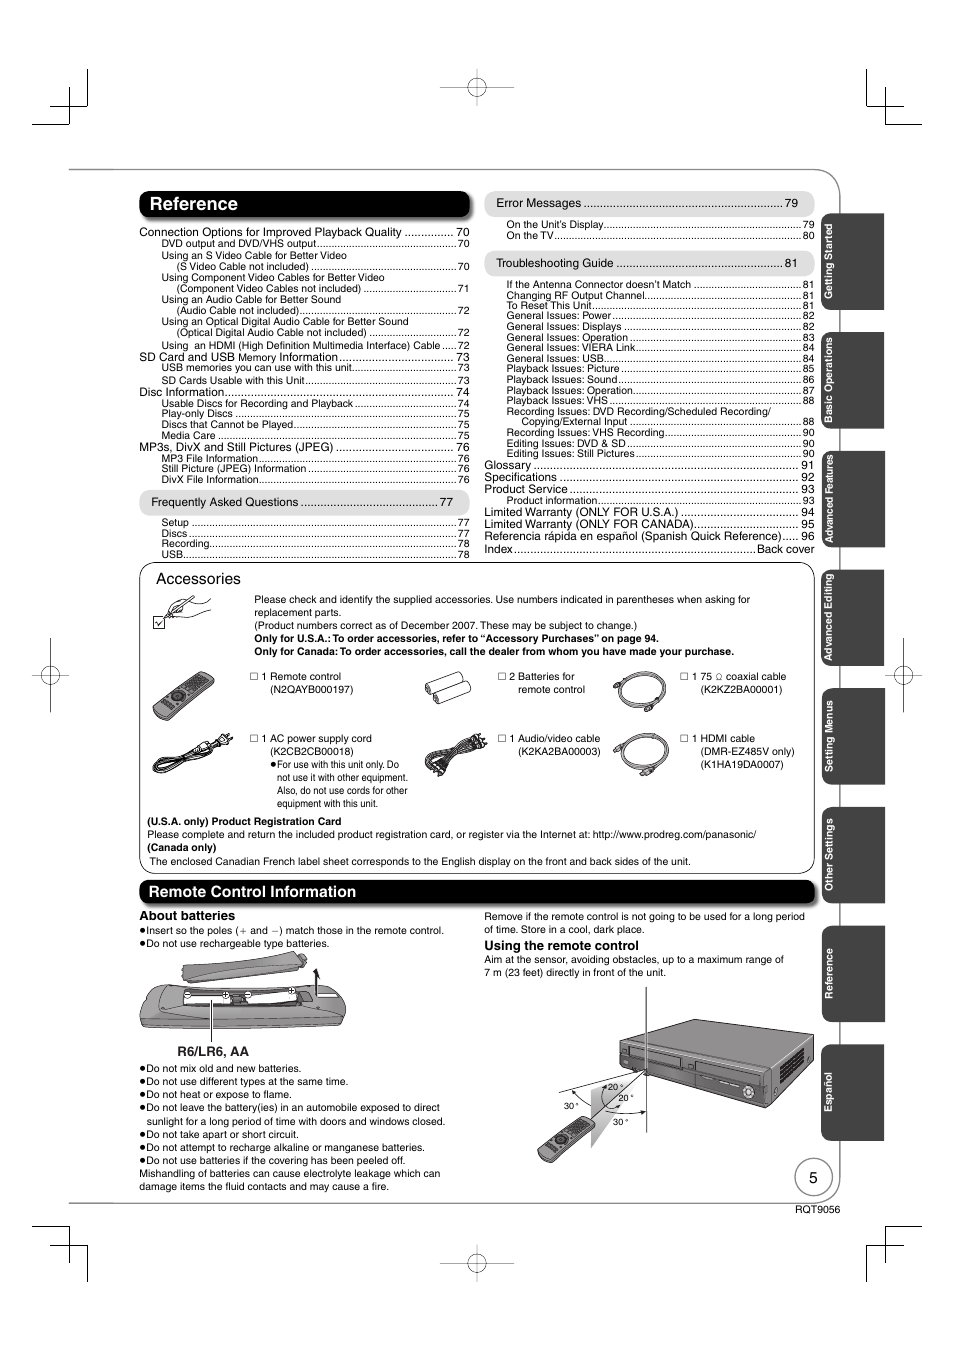 Reference, Remote control information, Accessories